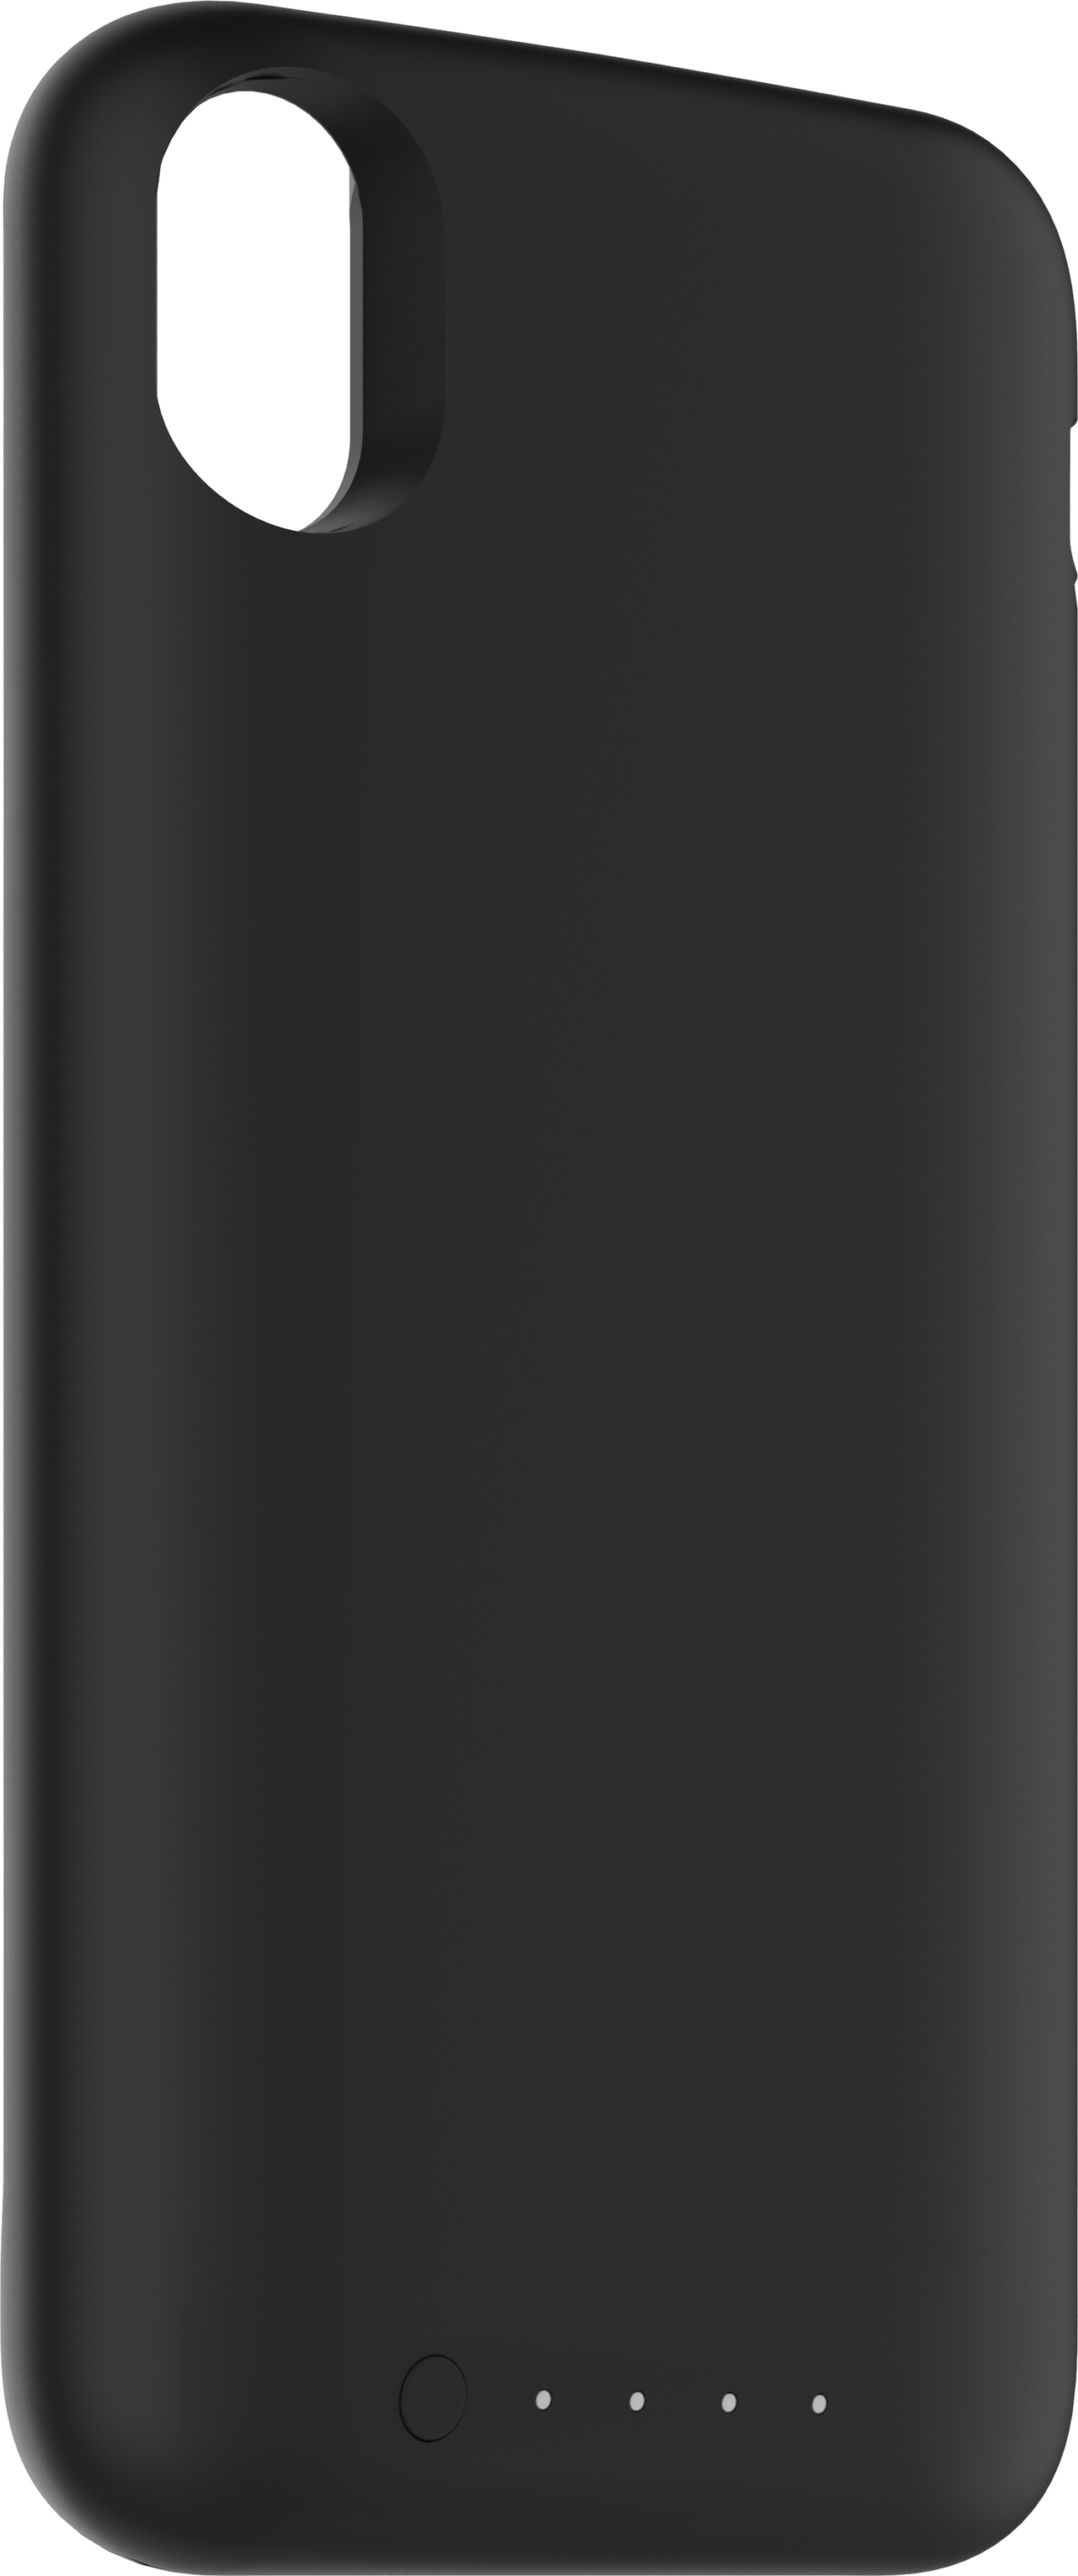 buy popular 2234d 0b178 Mophie's upcoming wireless charging case for iPhone X was just ...